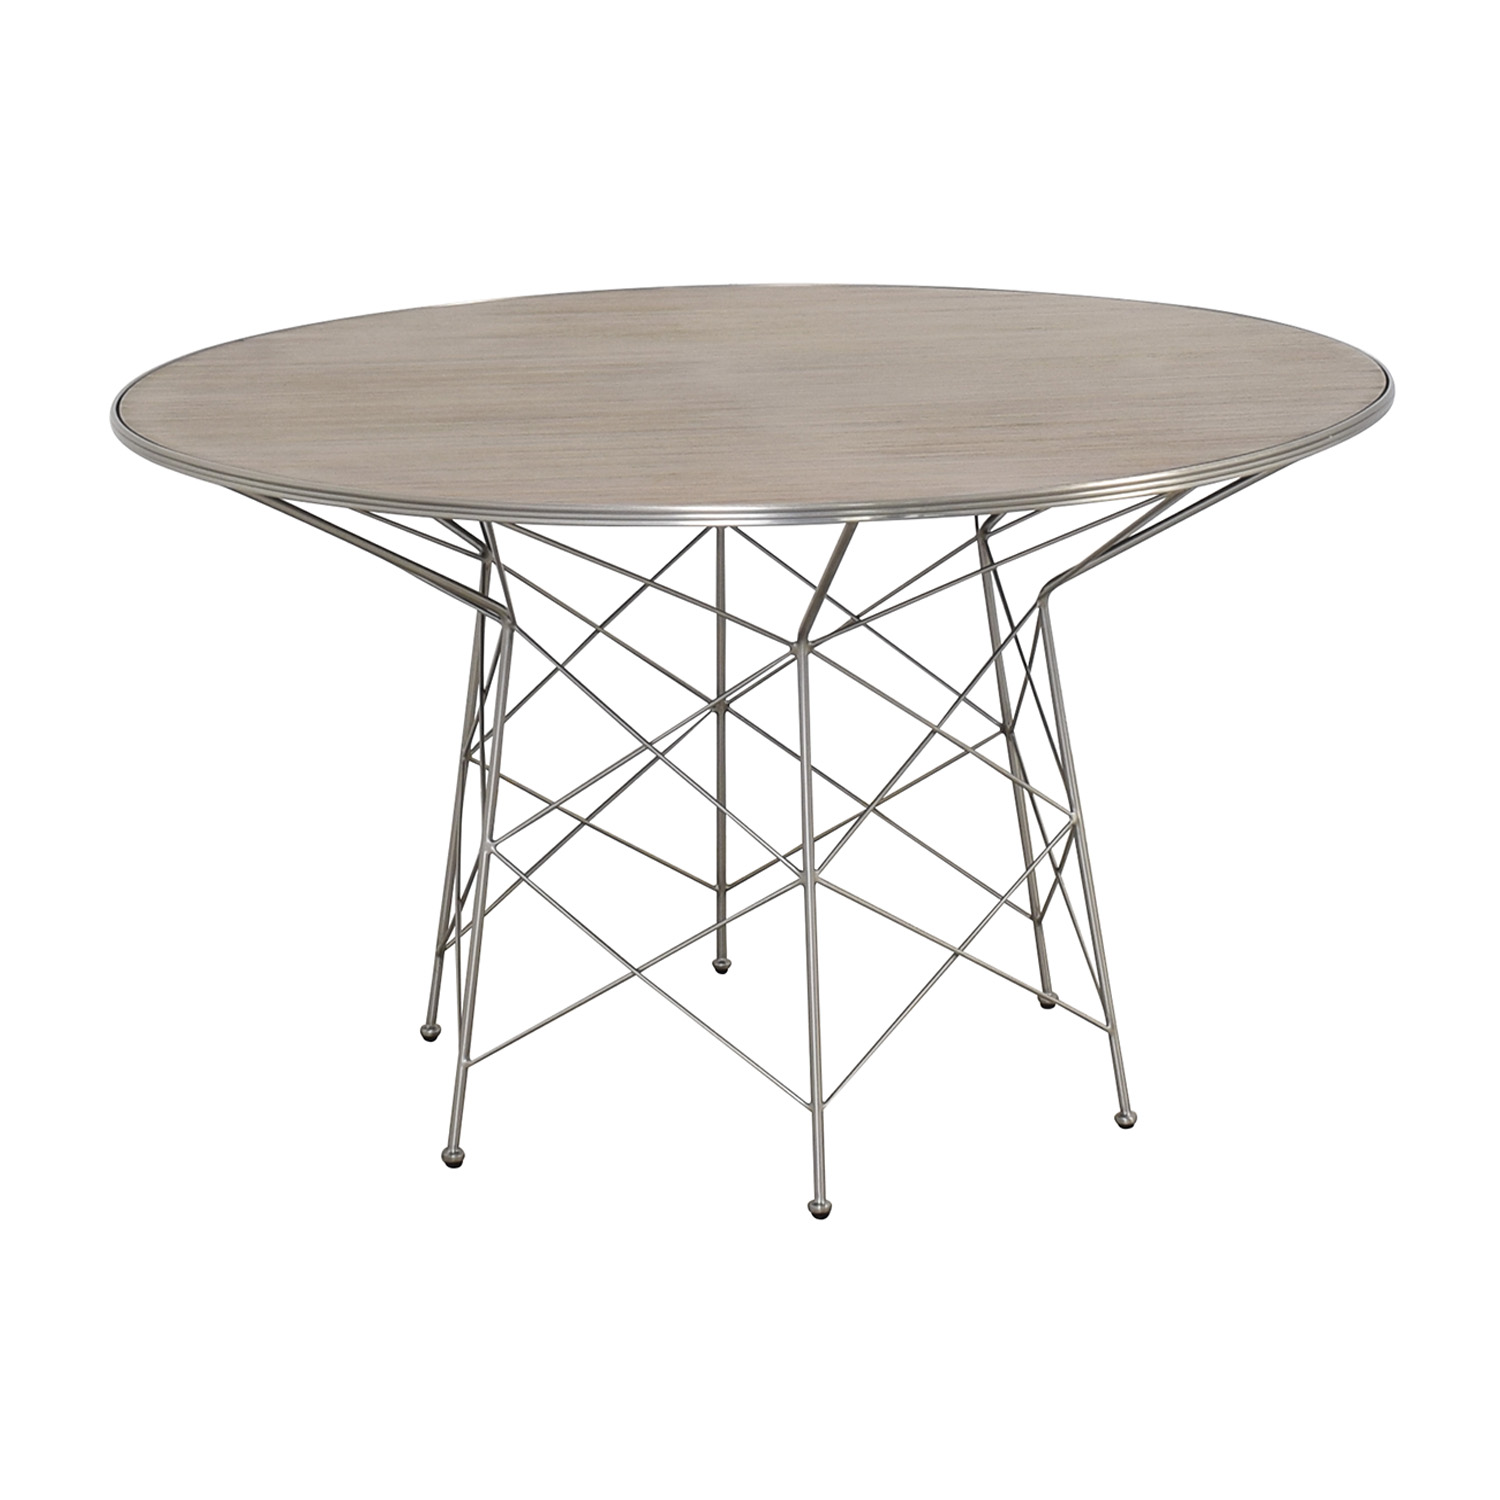 Caracole Caracole Modern Metro High Rise Dining Table dimensions